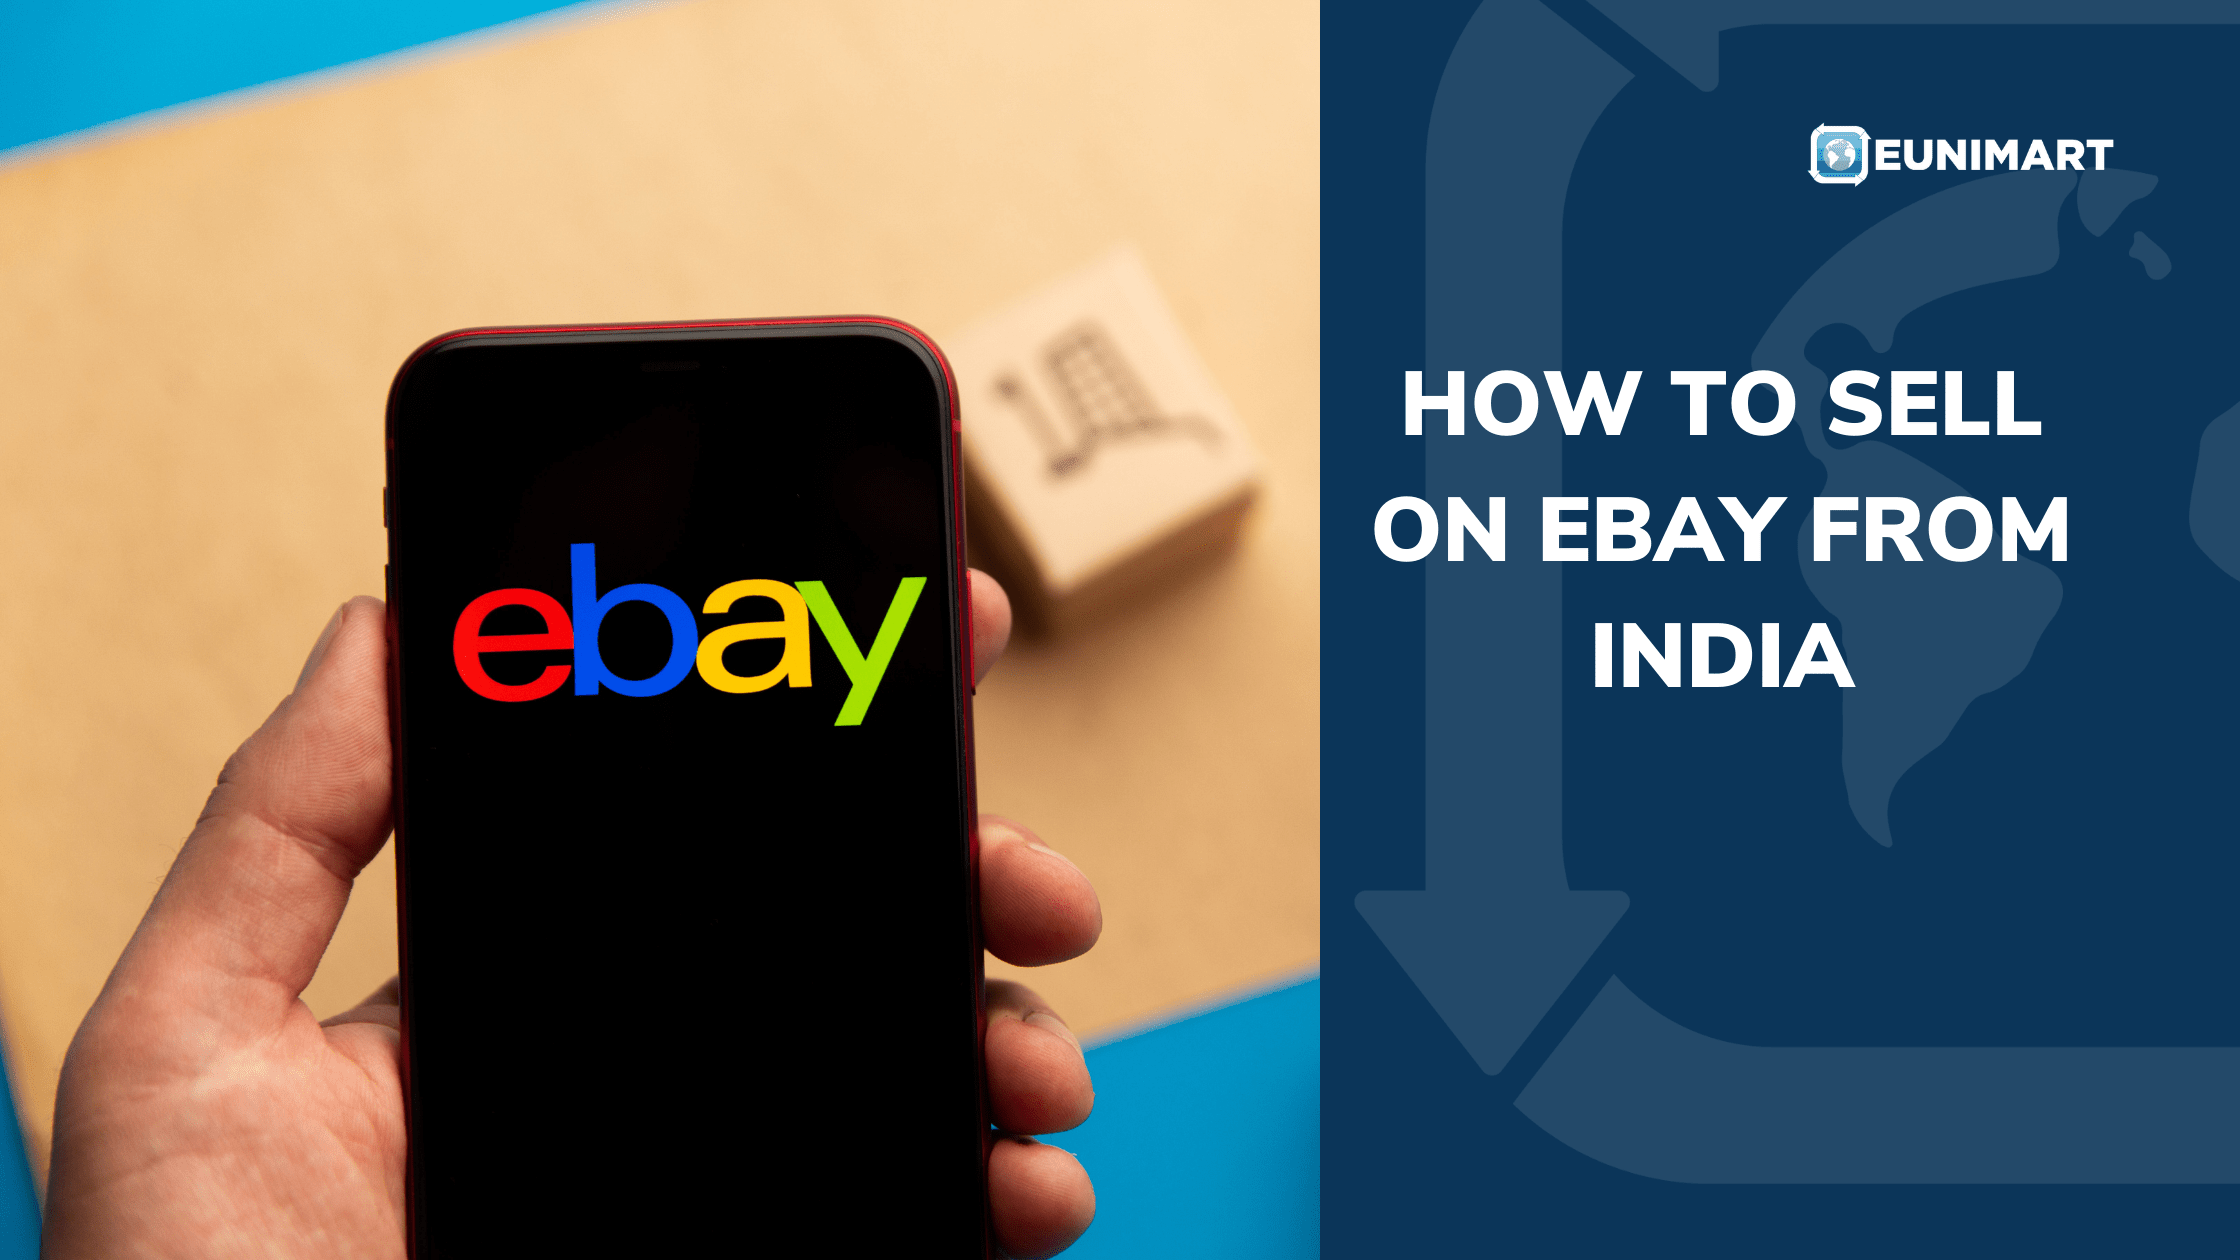 How to sell on eBay from India